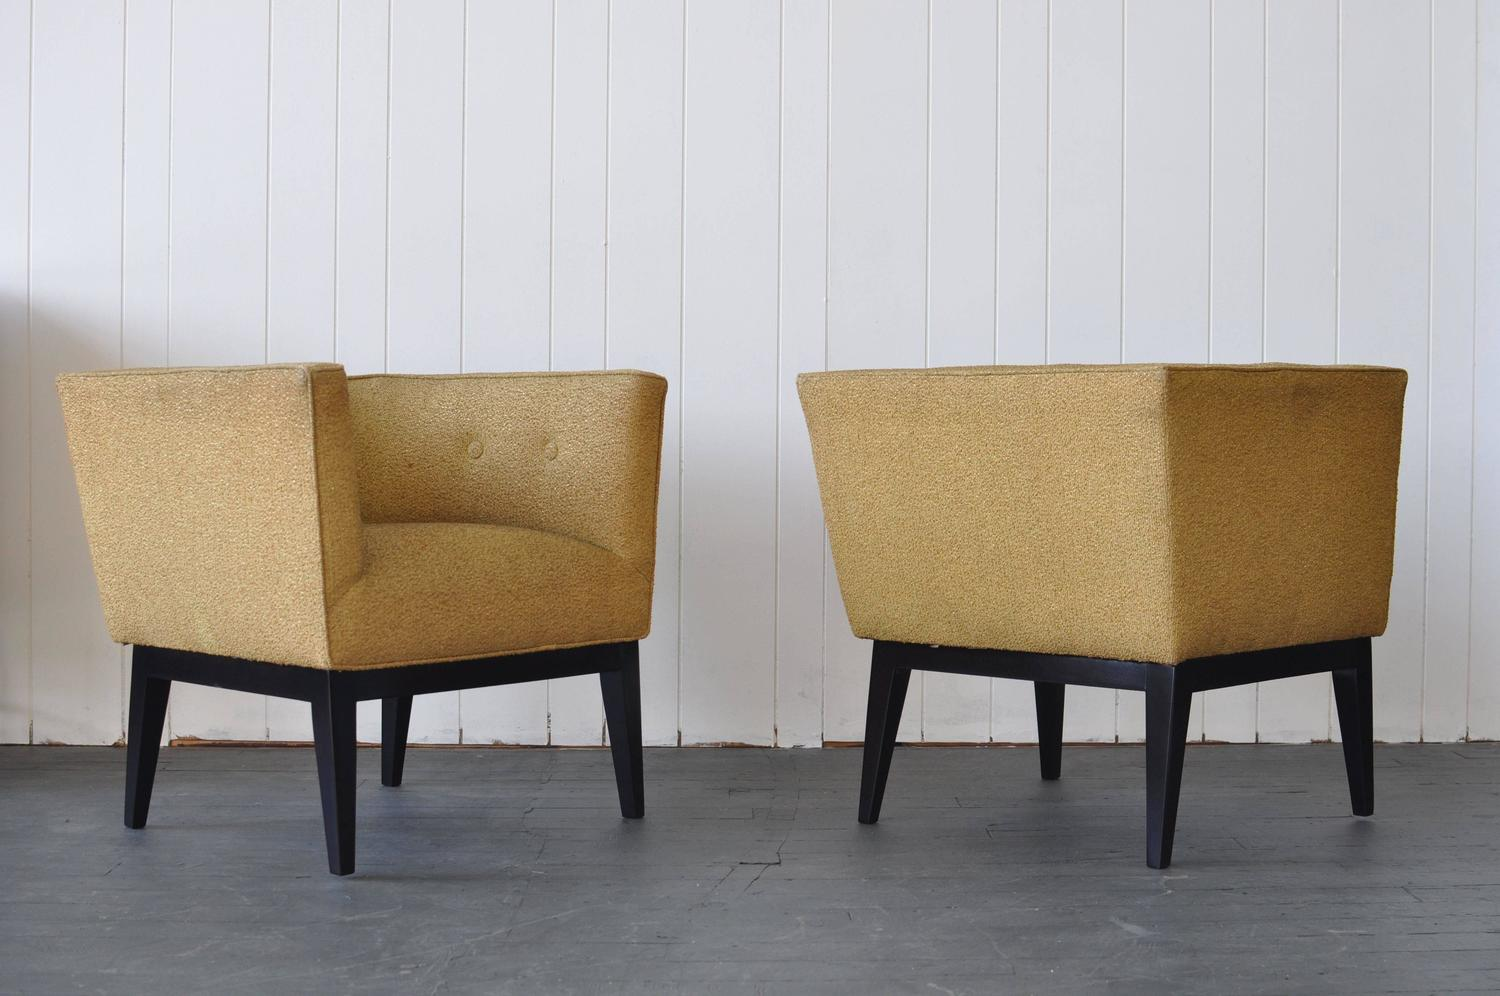 Pair of 1950s Cube Chairs For Sale at 1stdibs